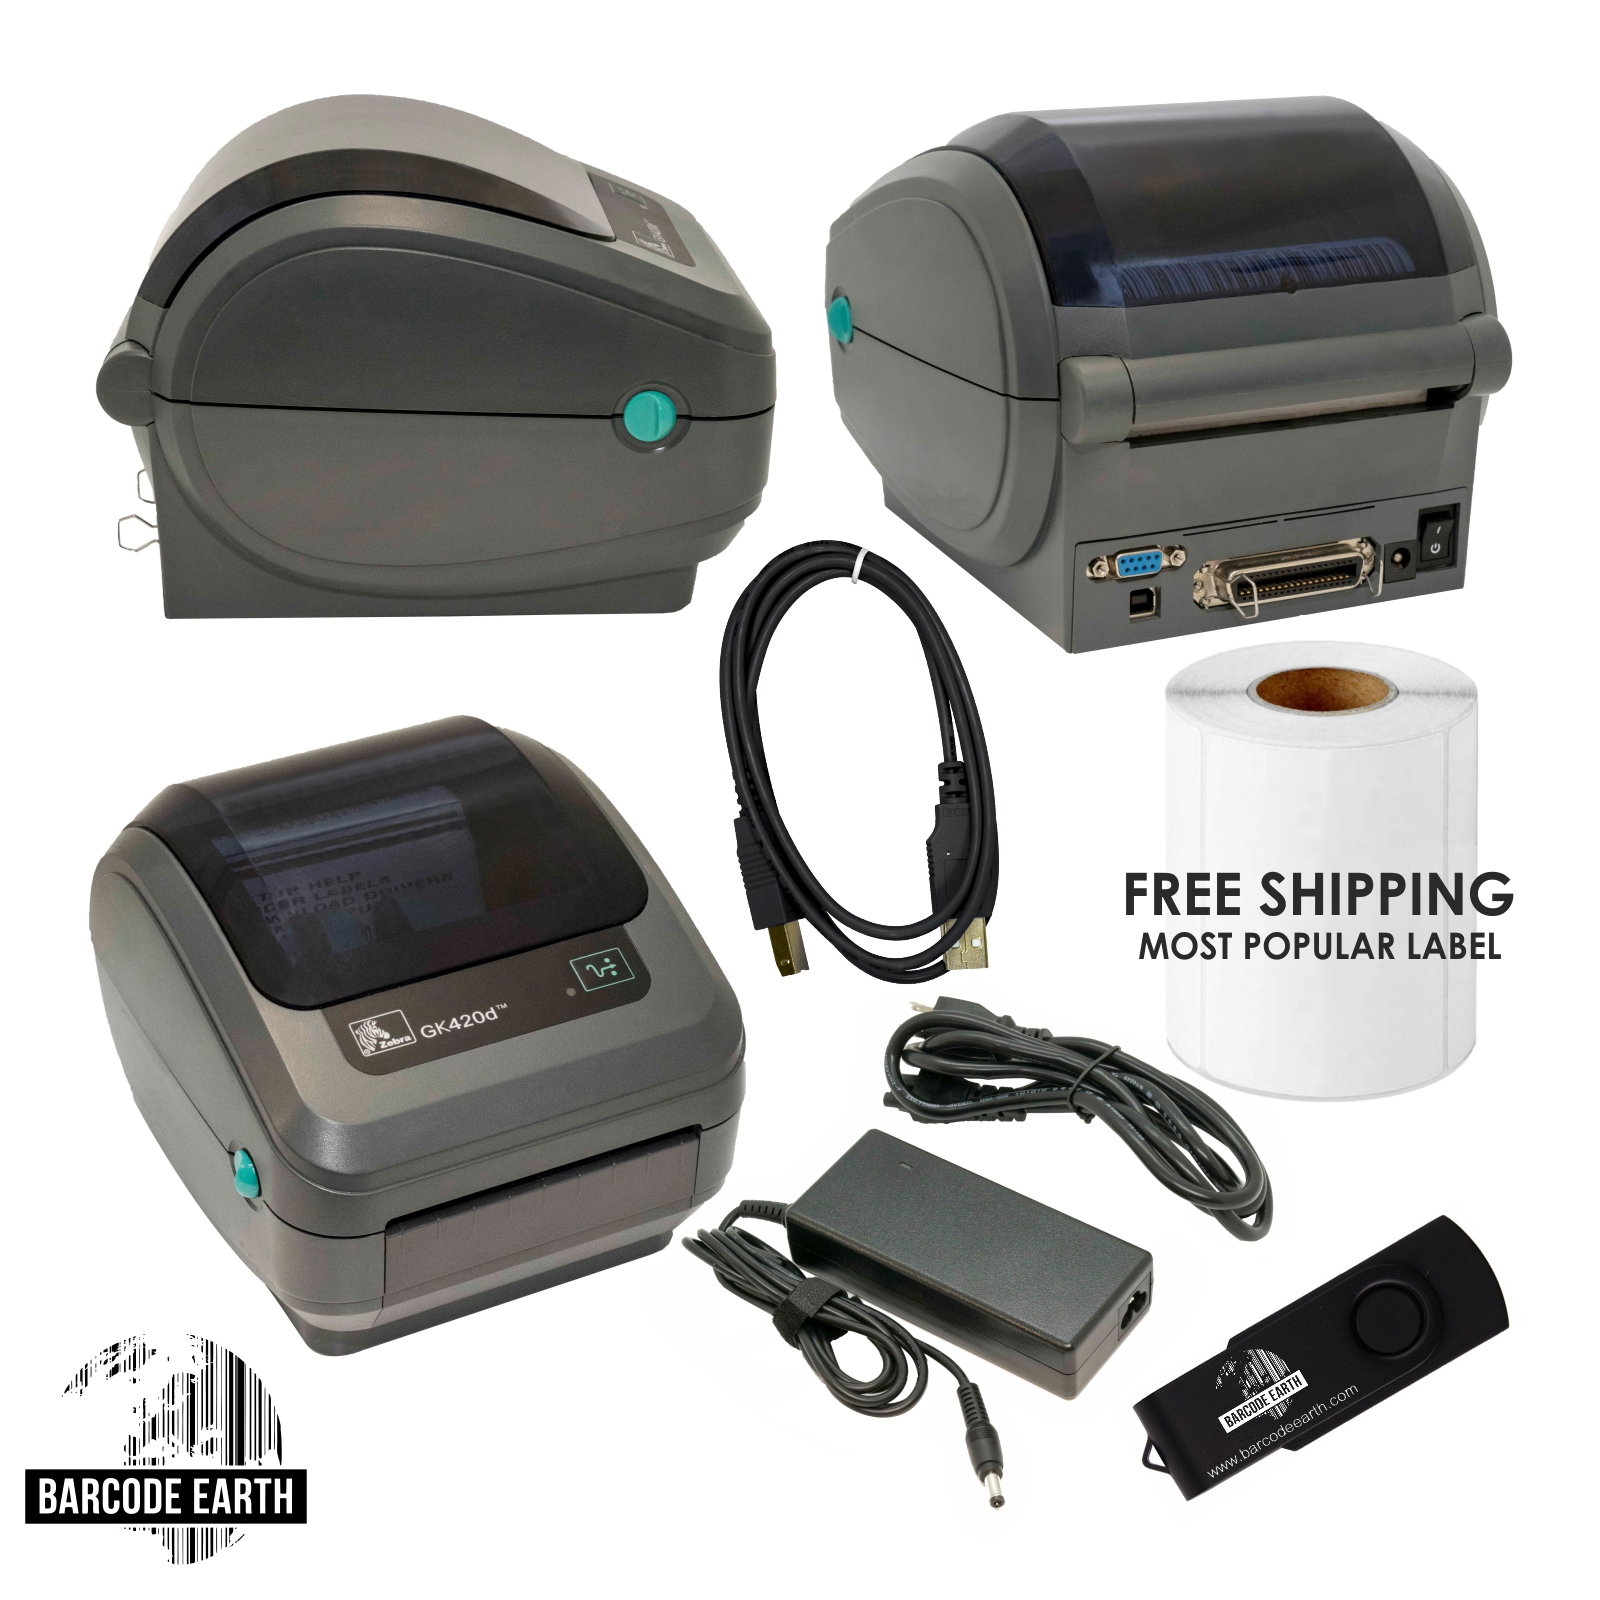 Zebra GK420d Direct Thermal Shipping Label Printer +1000 labels!